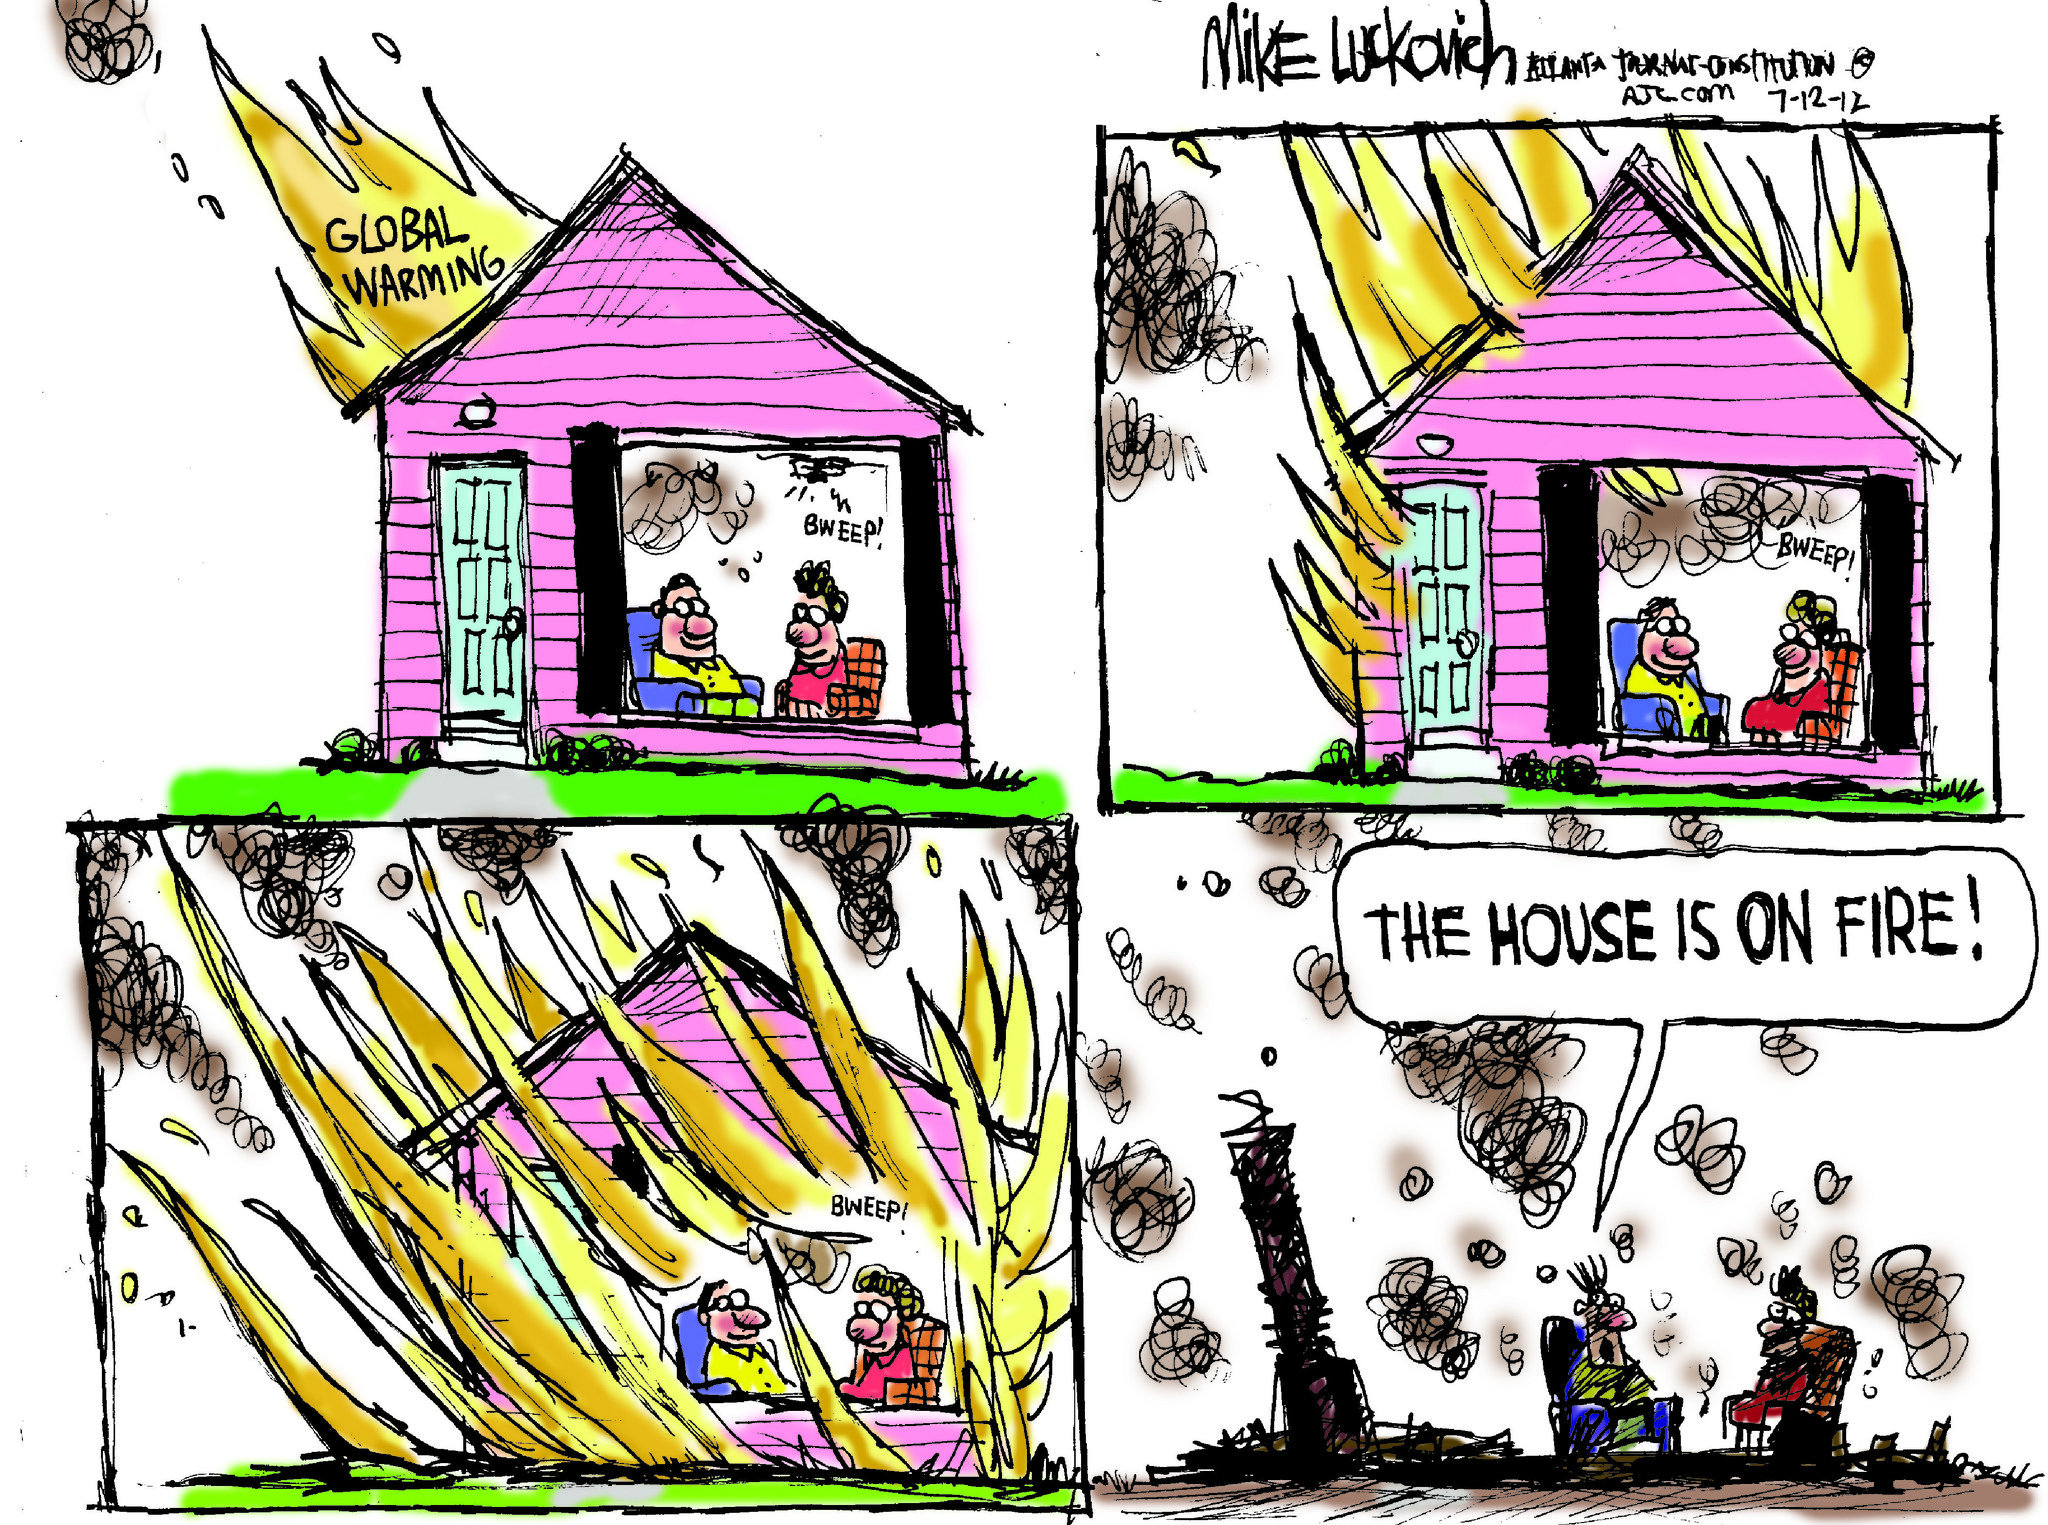 2048x1525 Mike Luckovich Cartoon Burning Down The House